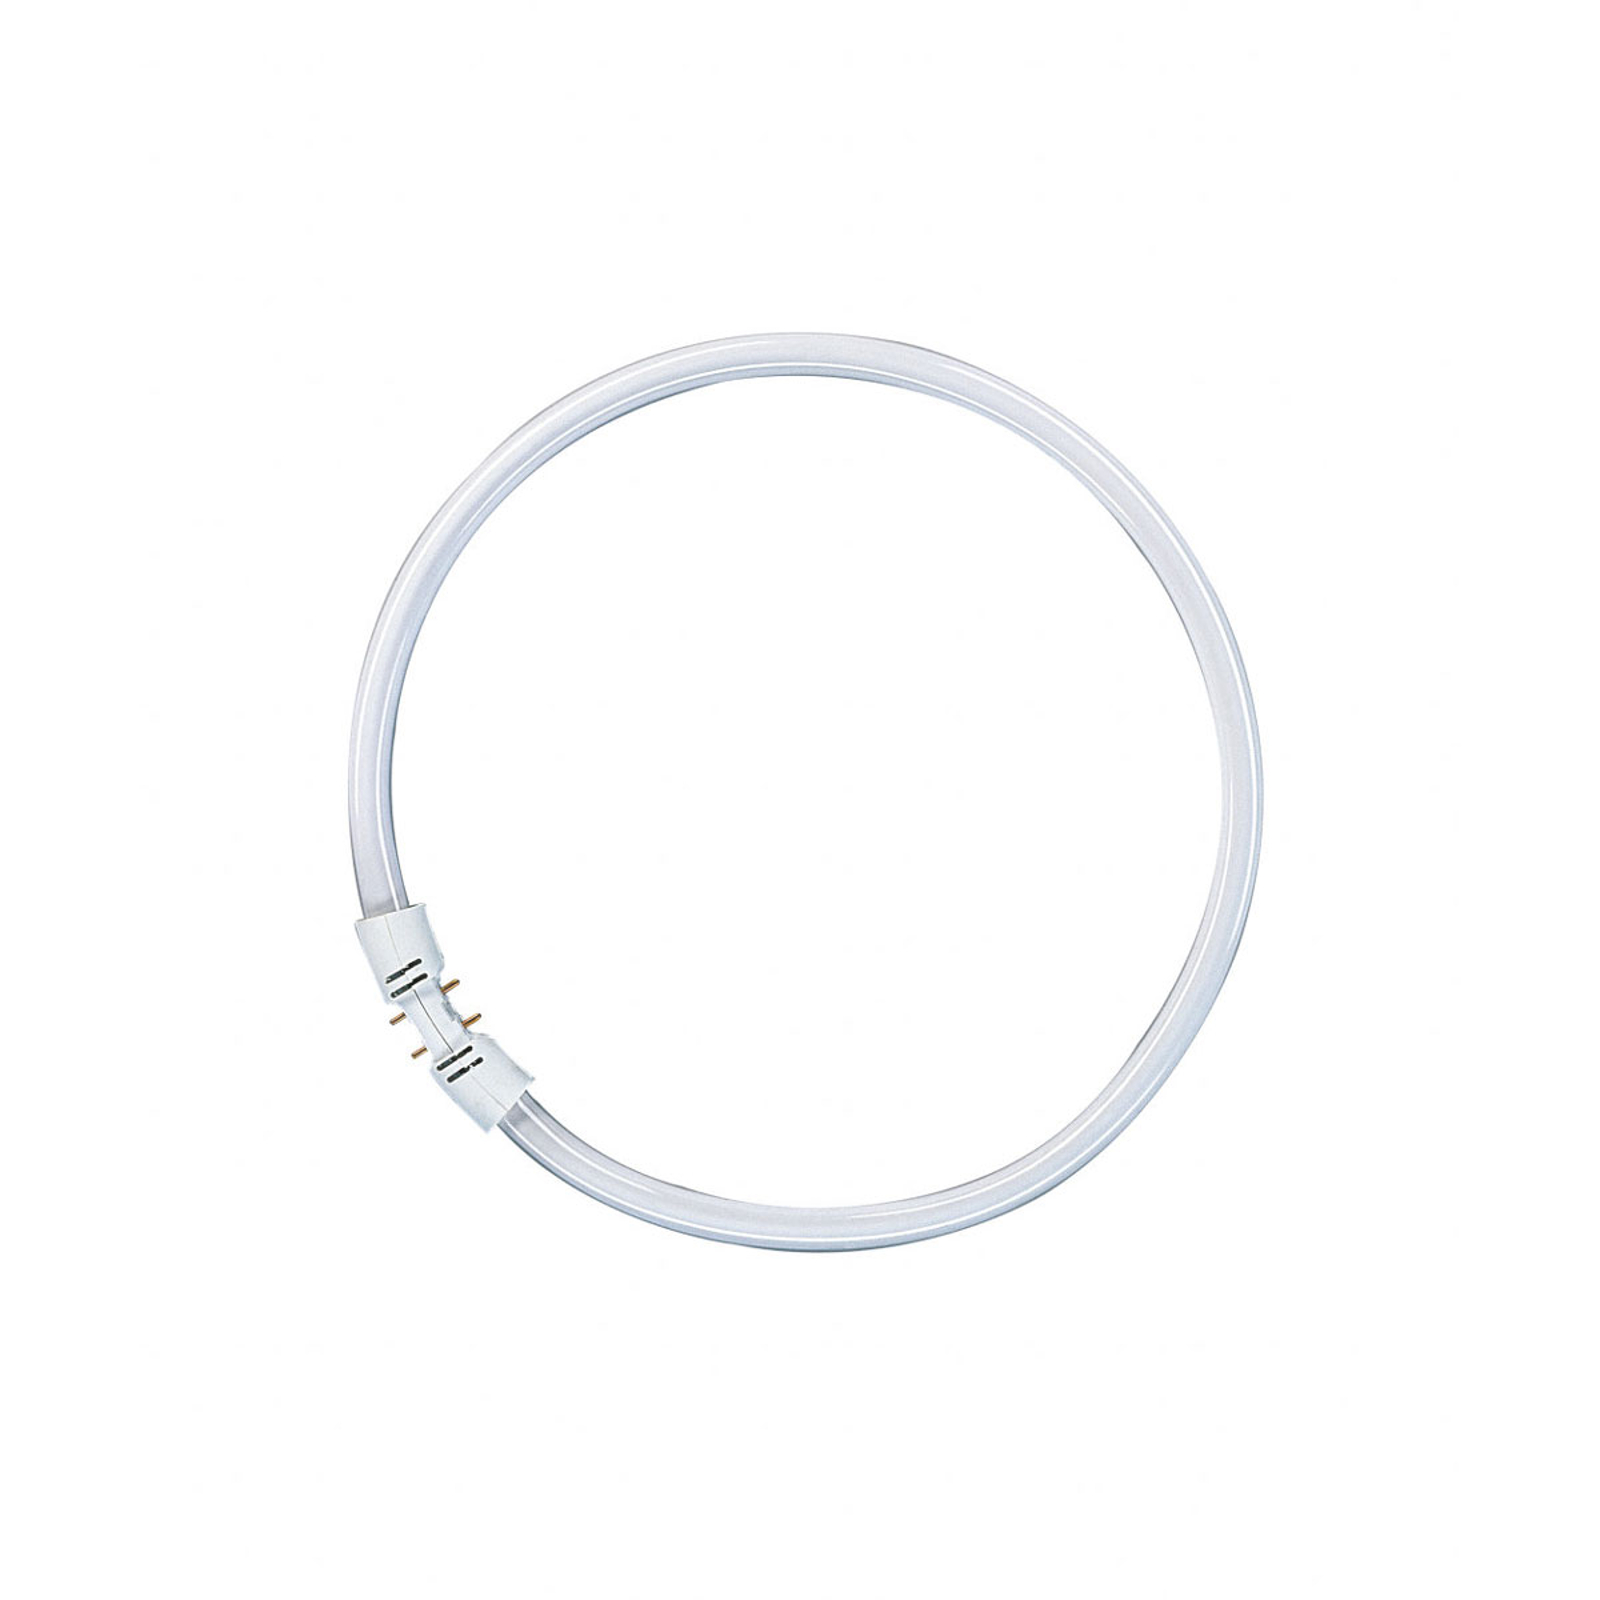 2Gx13 LUMILUX T5 Ring-Leuchtstofflampe 22W 865